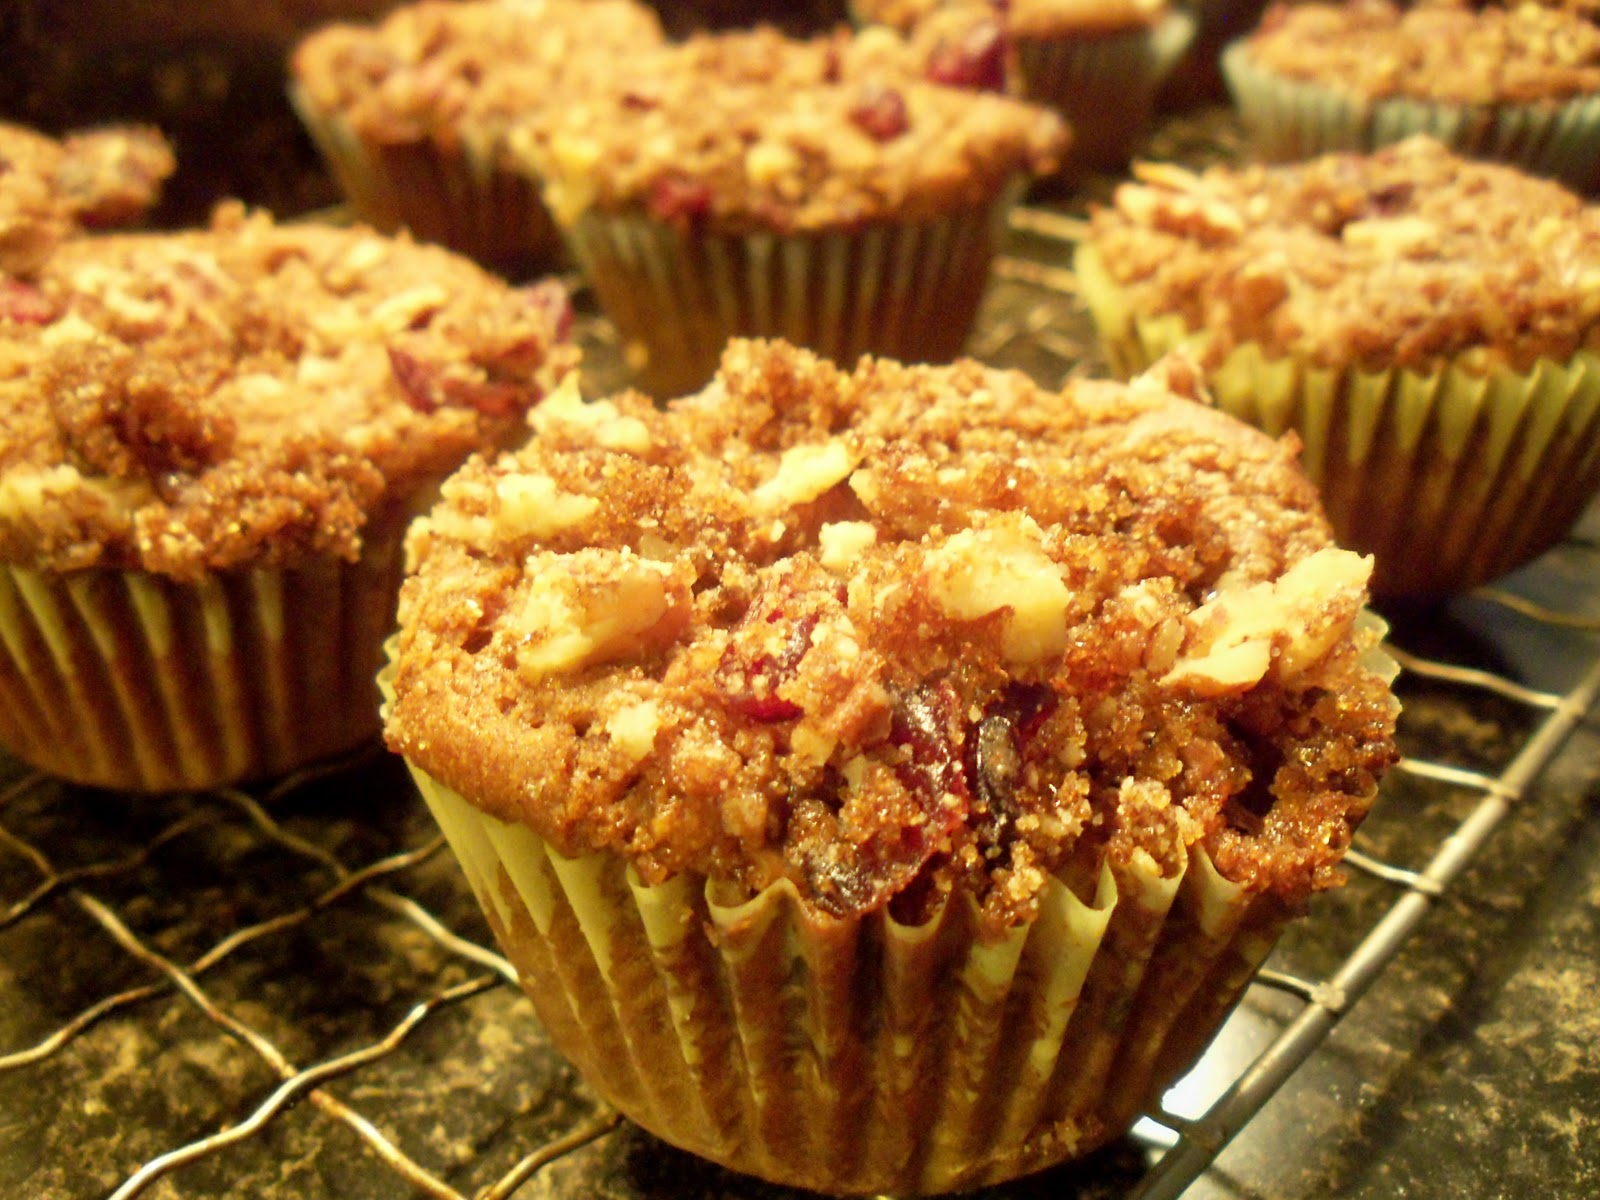 ... traveling vegan chef: GF Pumpkin Muffins with Cranberry Pecan Streusel